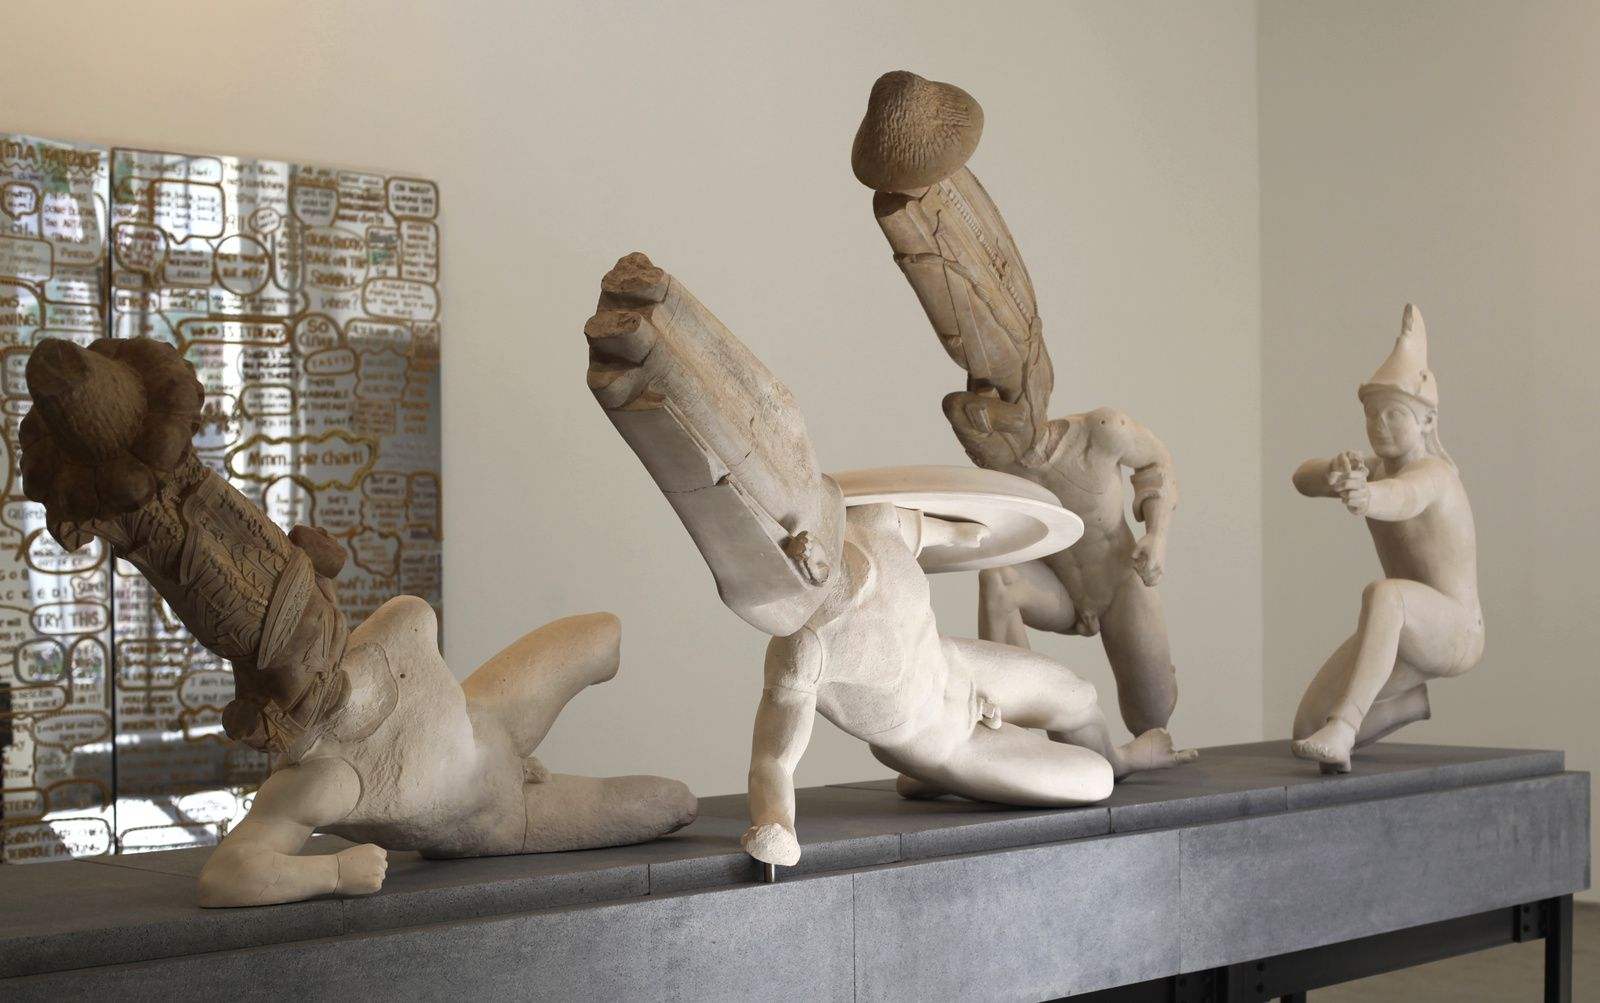 """Eternity-Tang Dynasty Bodhisattva of the hebei province Museum, Northern Qi Losana Buddha temple of the Longxing Temple, Bodhisattva of the Xiude Temple, West Pediment of the Temple of Aphaia"", 2016 de XU Zhen - Courtesy Galerie Perrotin © Photo Éric Simon"